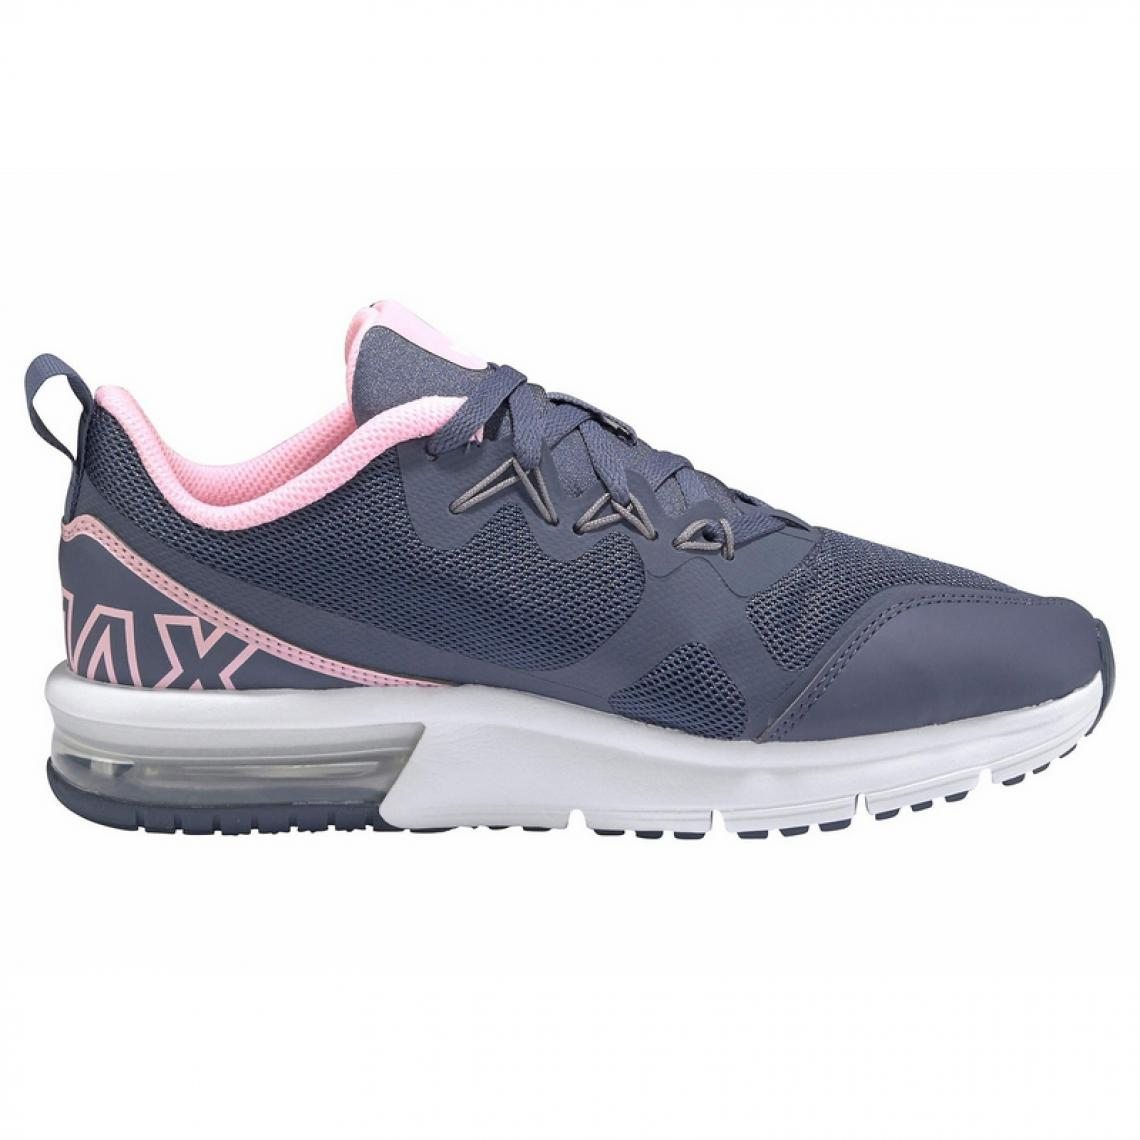 reputable site 02d0c 87619 Chaussures de running femme Nike Air Max Fury - Gris Chaussures fille